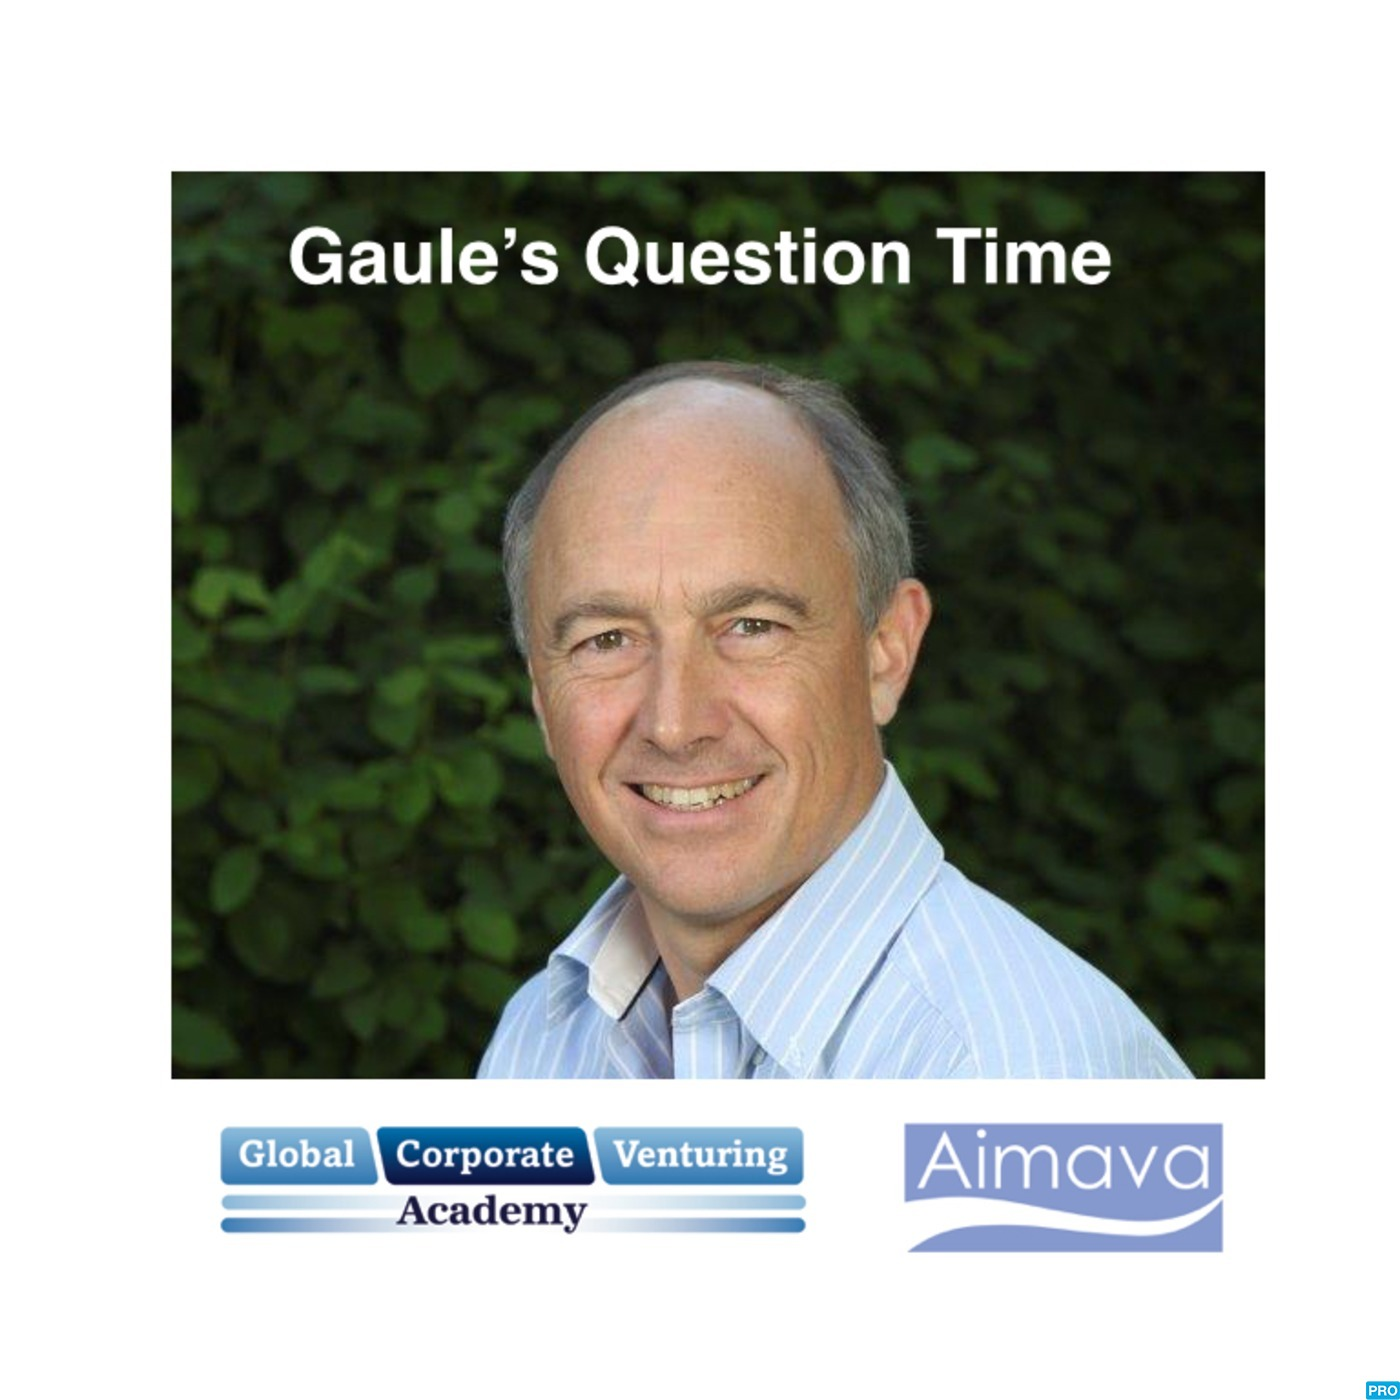 Gaule's Question Time